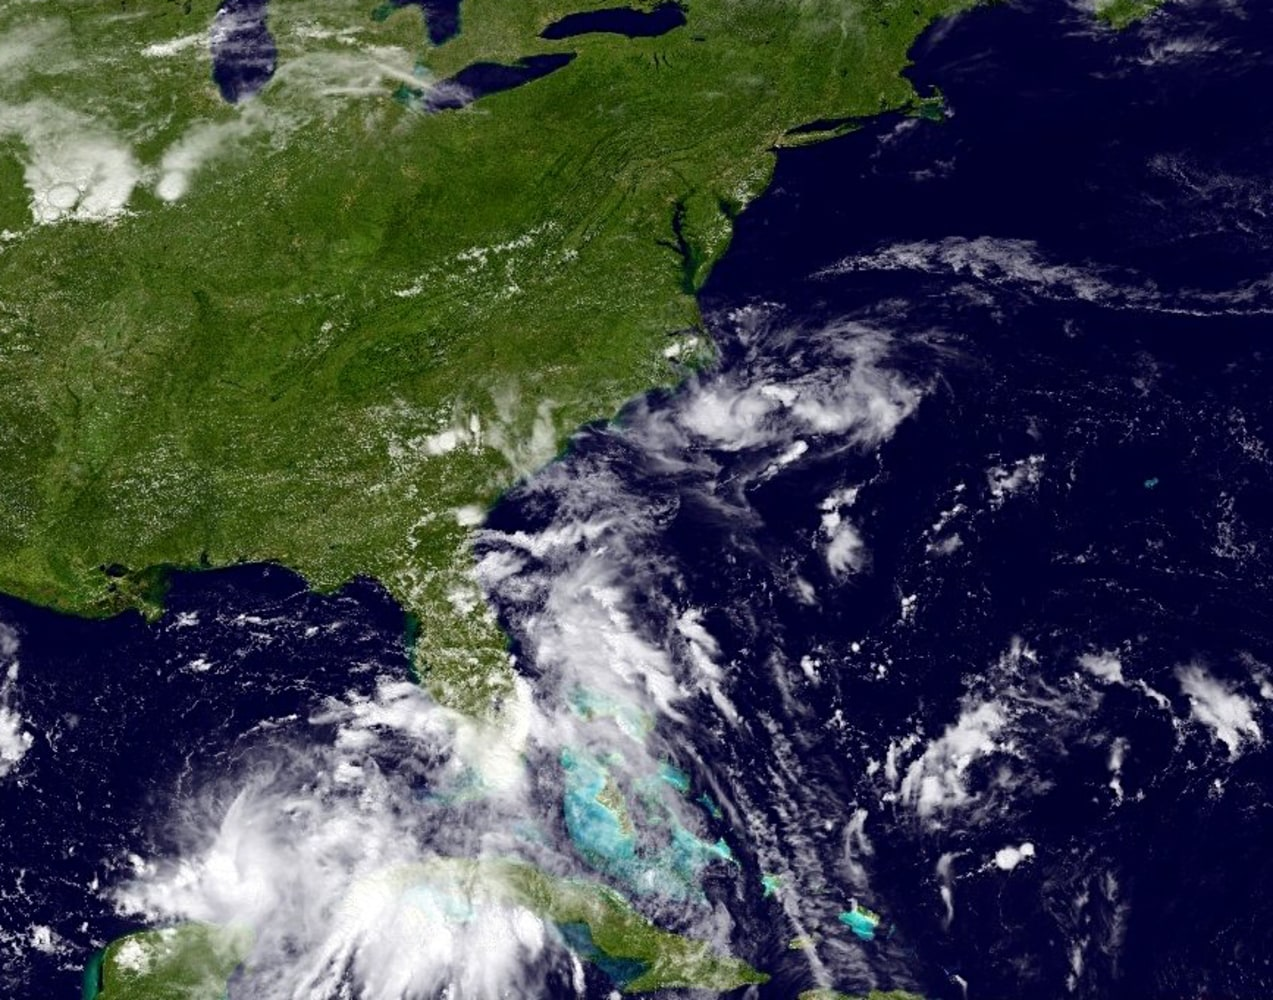 Hurricane watch issued for parts of Florida